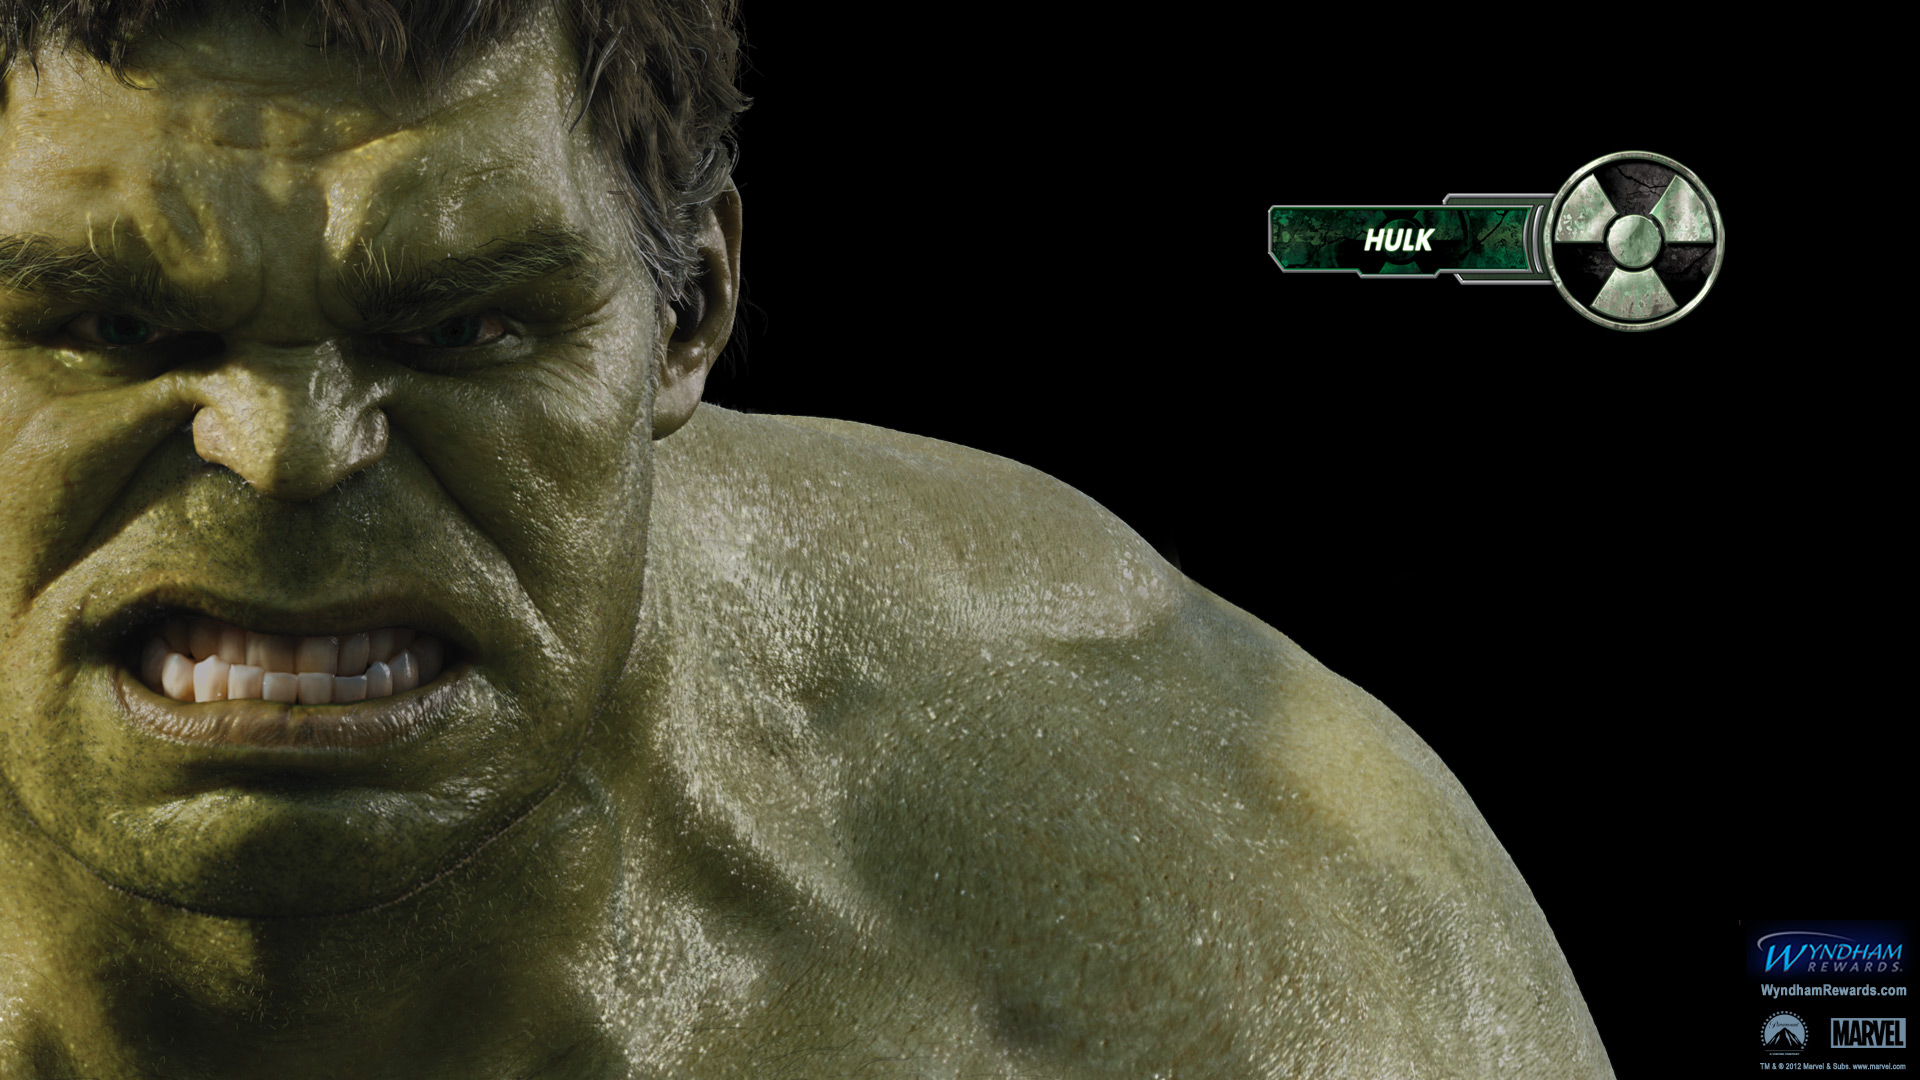 Pictures of the hulk in avengers Celebrity Photos, Celebrity Pictures, Celebrity Pics E!